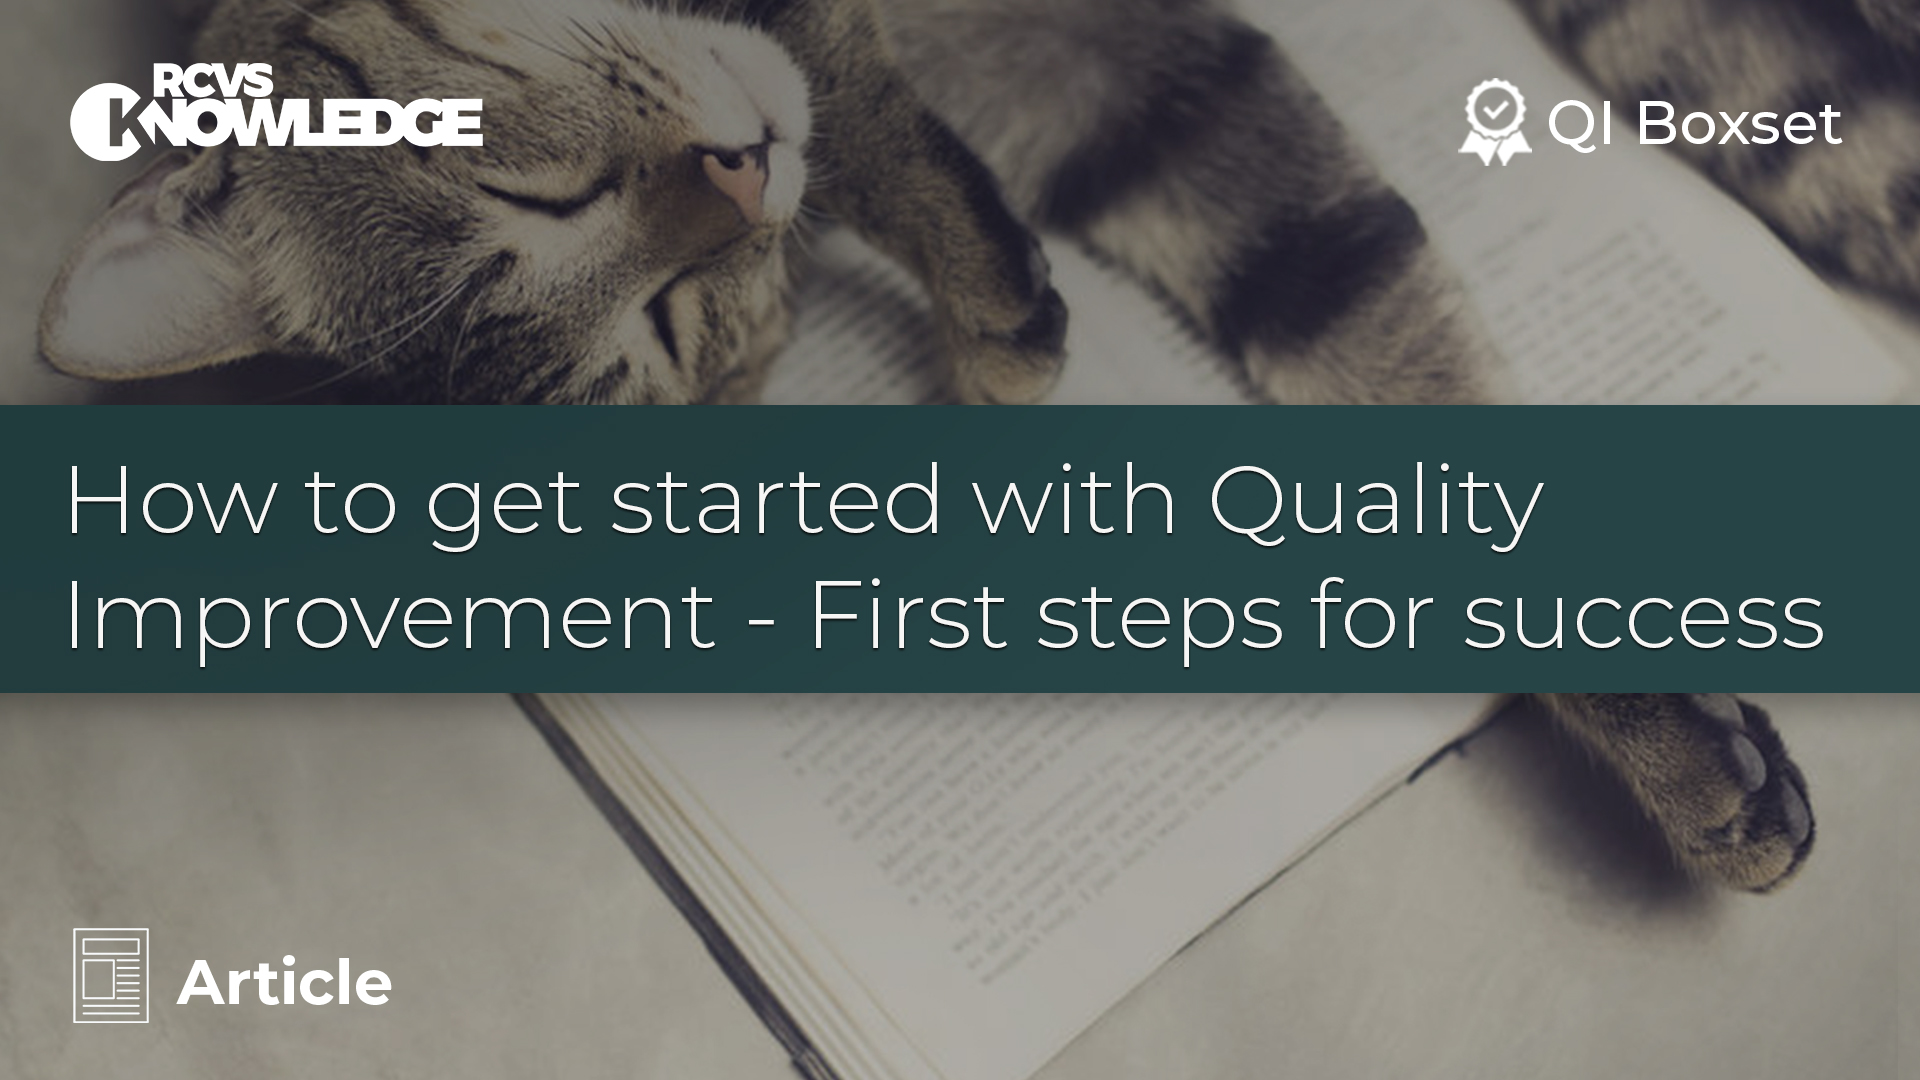 How to get started with Quality Improvement - First steps for success